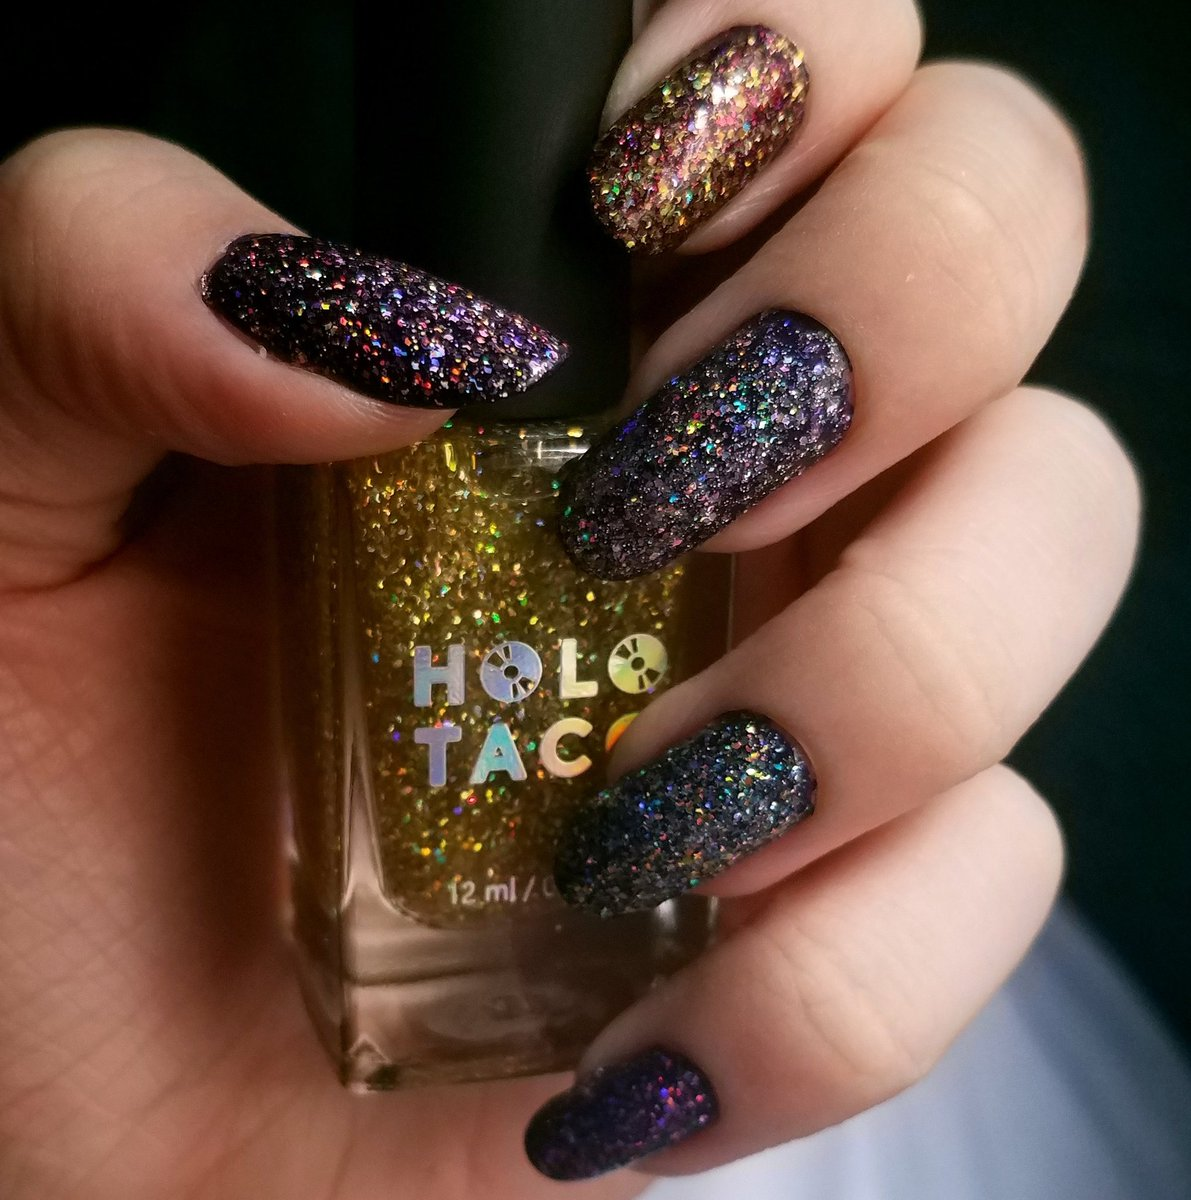 The anniversary collection finally came  added it on top of the holoday glitter collection. Its stunning in the sunlight  @holotaco @nailogical #nails #nailpolish #holotacopic.twitter.com/9IBPuI88tN